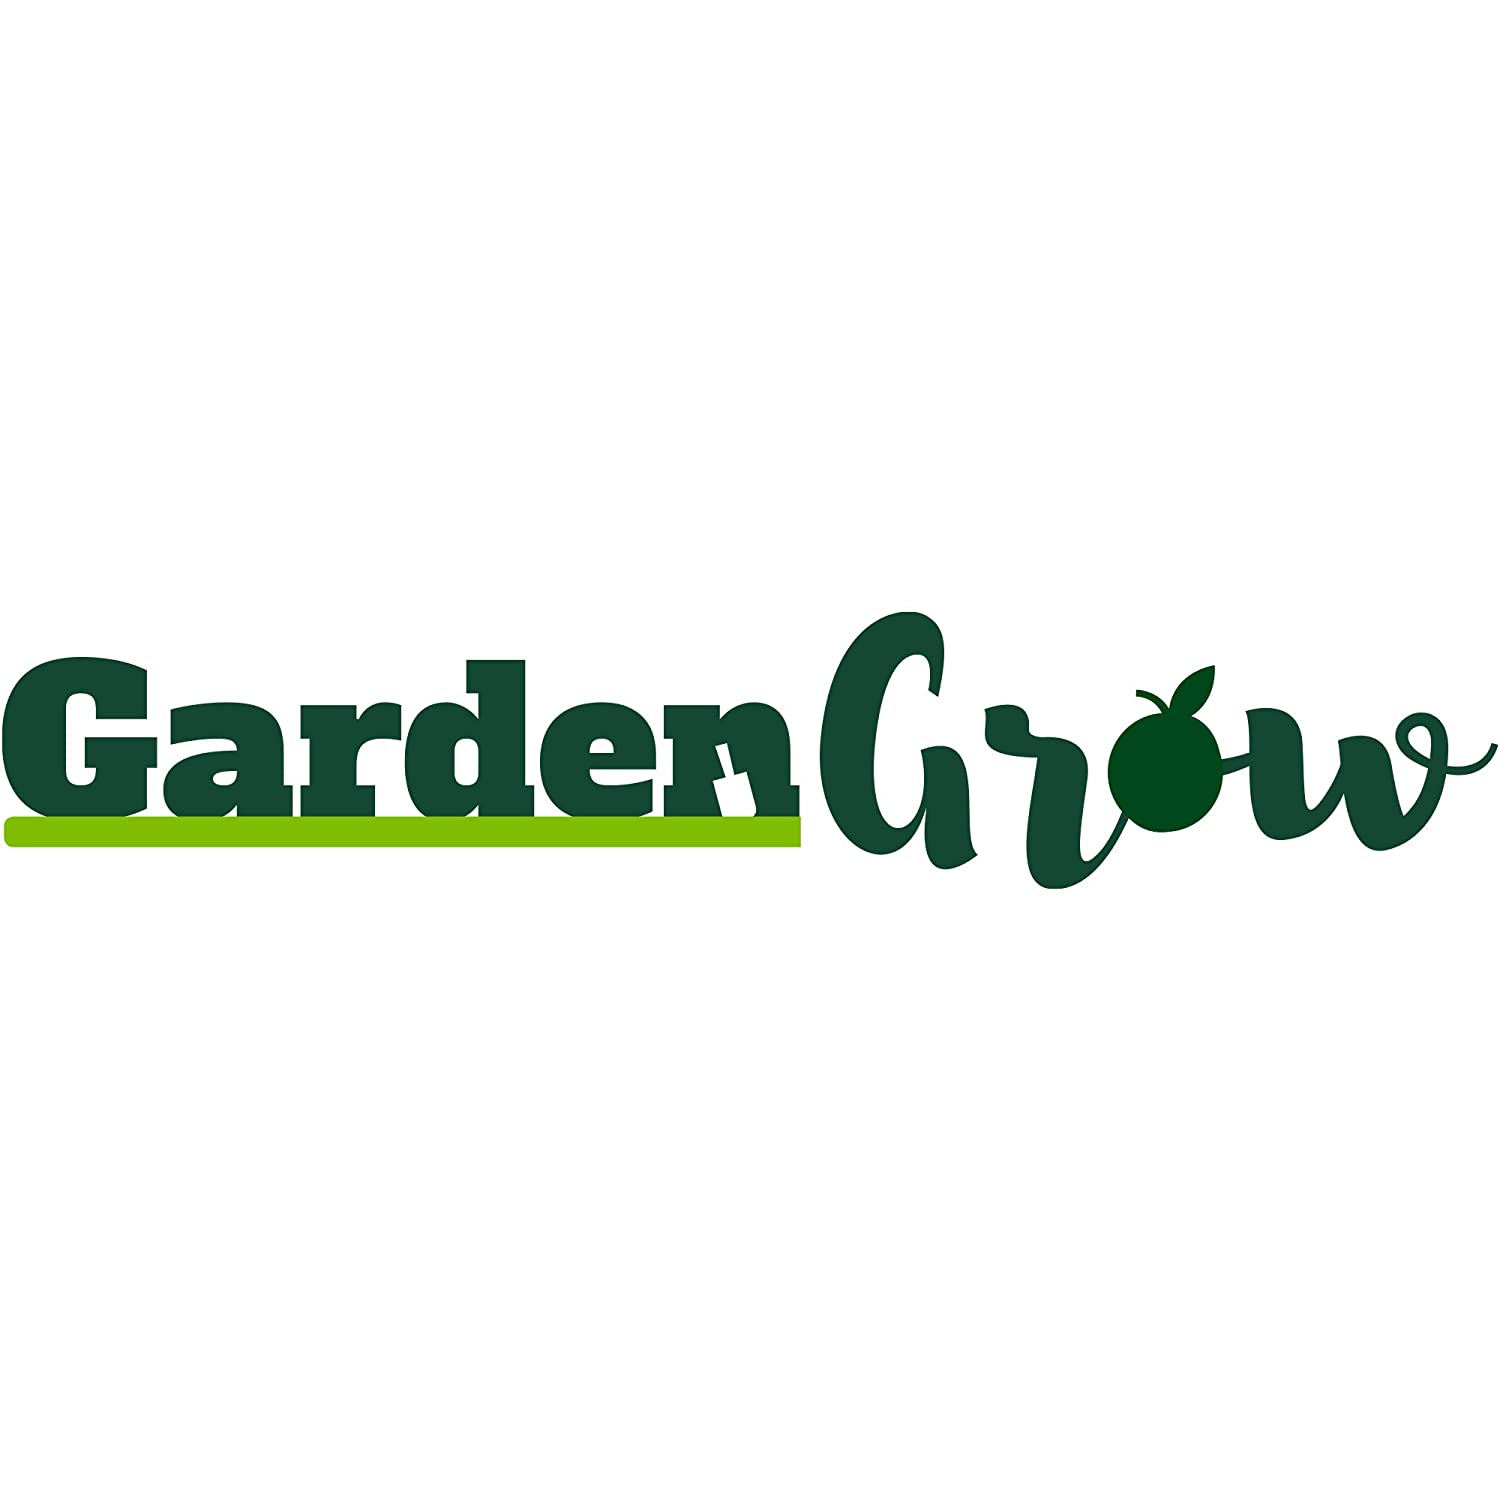 Garden Grow Wooden Outdoor Cold Frame Grow House Polycarbonate Shelter for Garden Vegetables /& Plants with LUCKY DIP THOMPSON /& MORGAN VEGETABLE SEEDS Worth /£20 Included